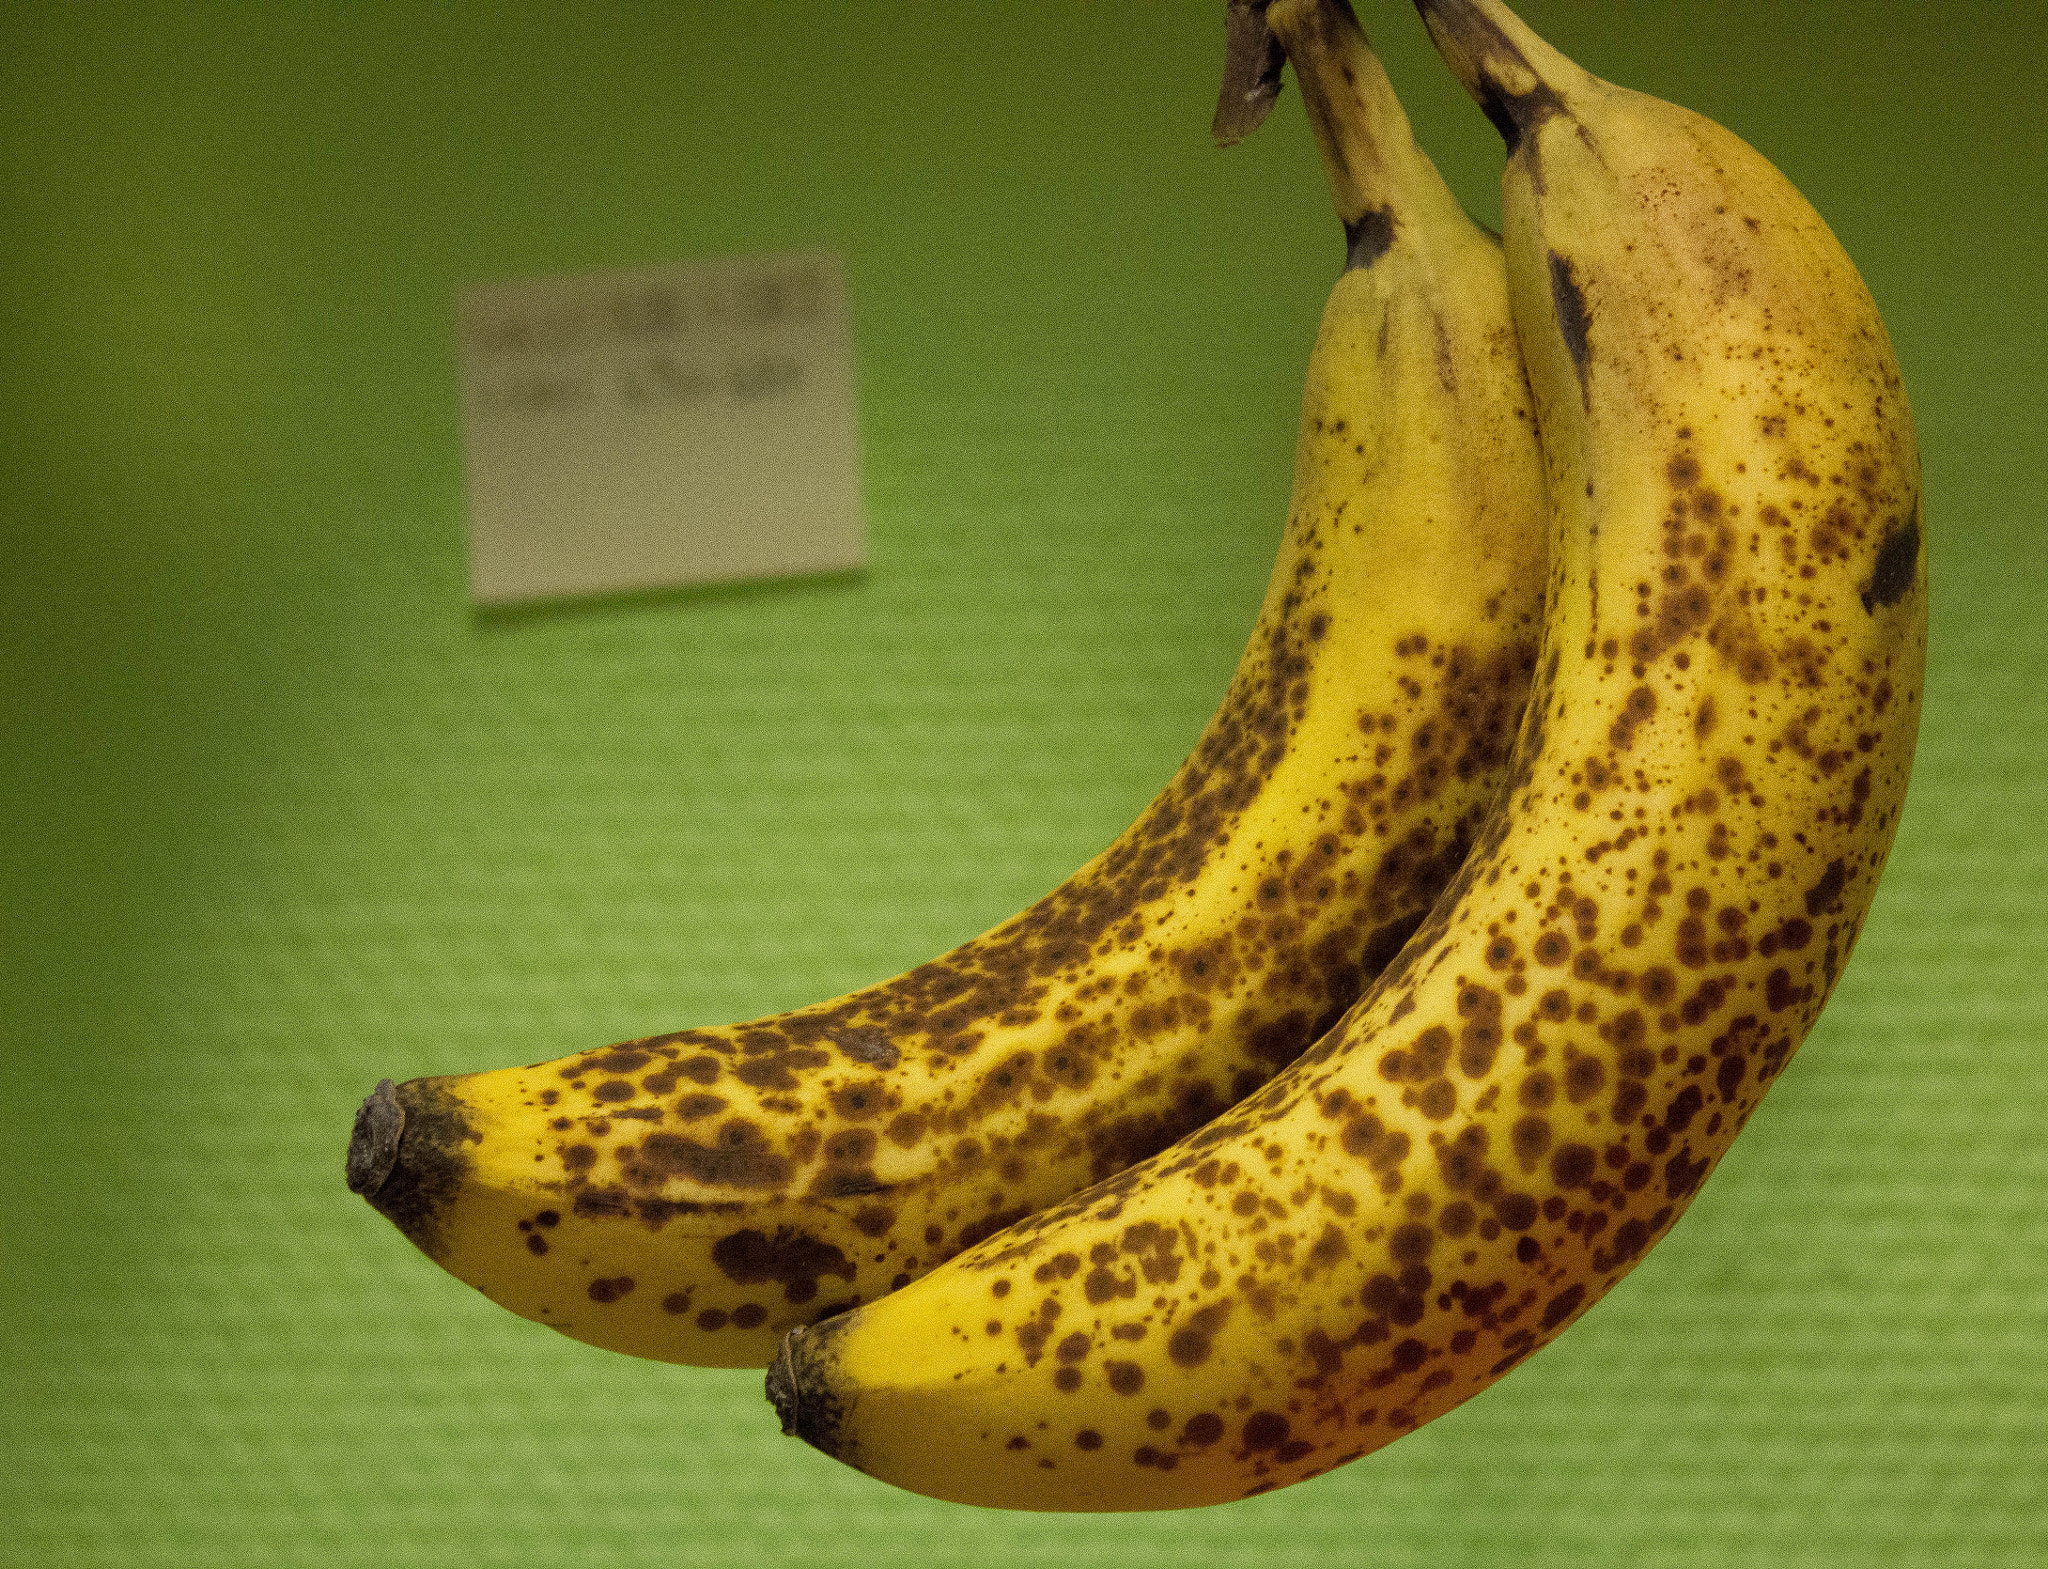 Photograph Bananas by Thomas G. on 500px